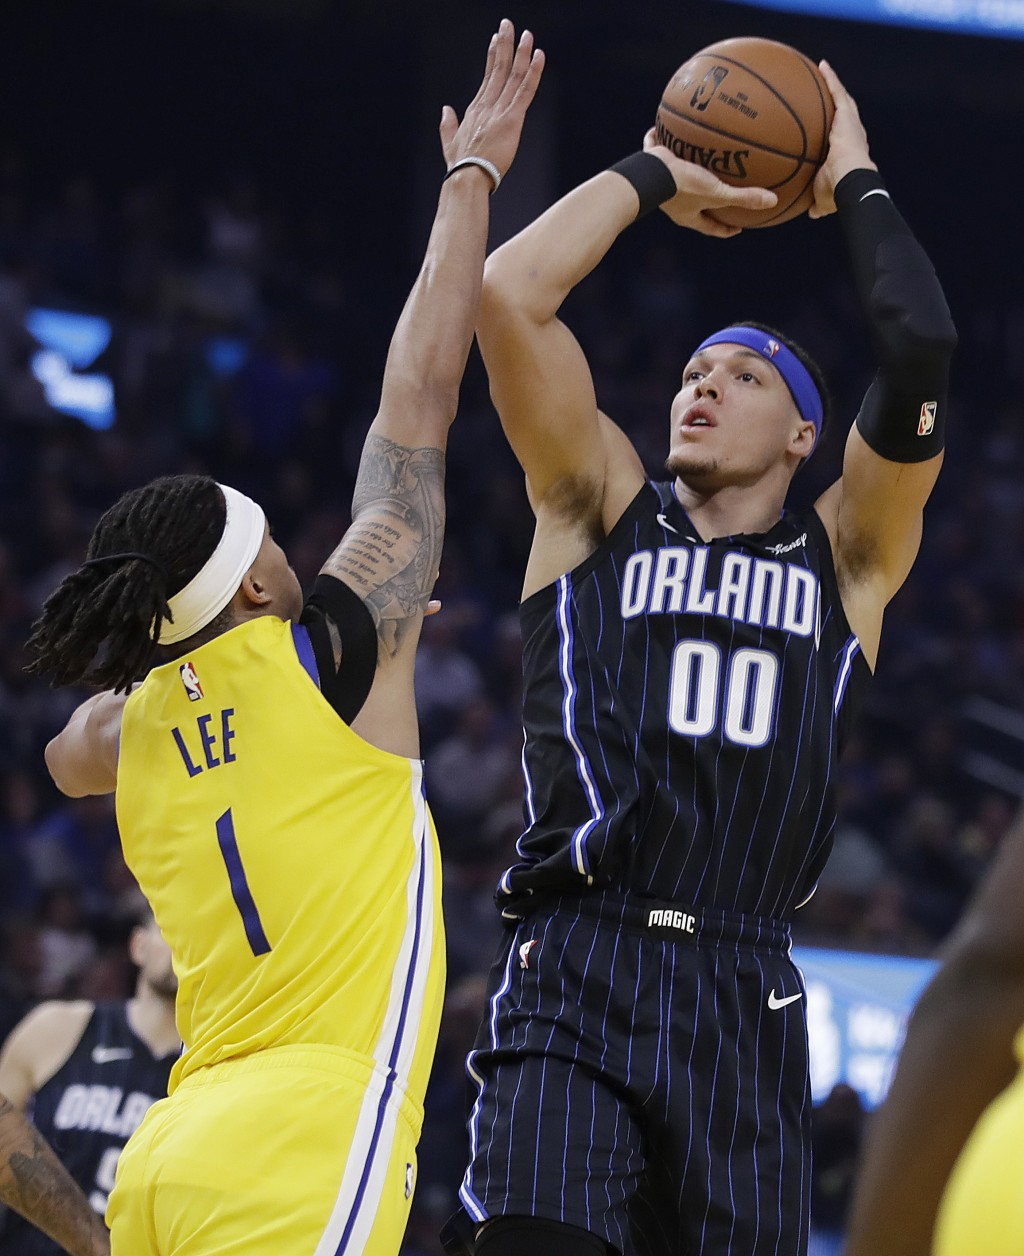 Orlando Magic's Aaron Gordon, right, shoots against Golden State Warriors' Damion Lee, left, bin the first half of an NBA basketball game Saturday, Ja...